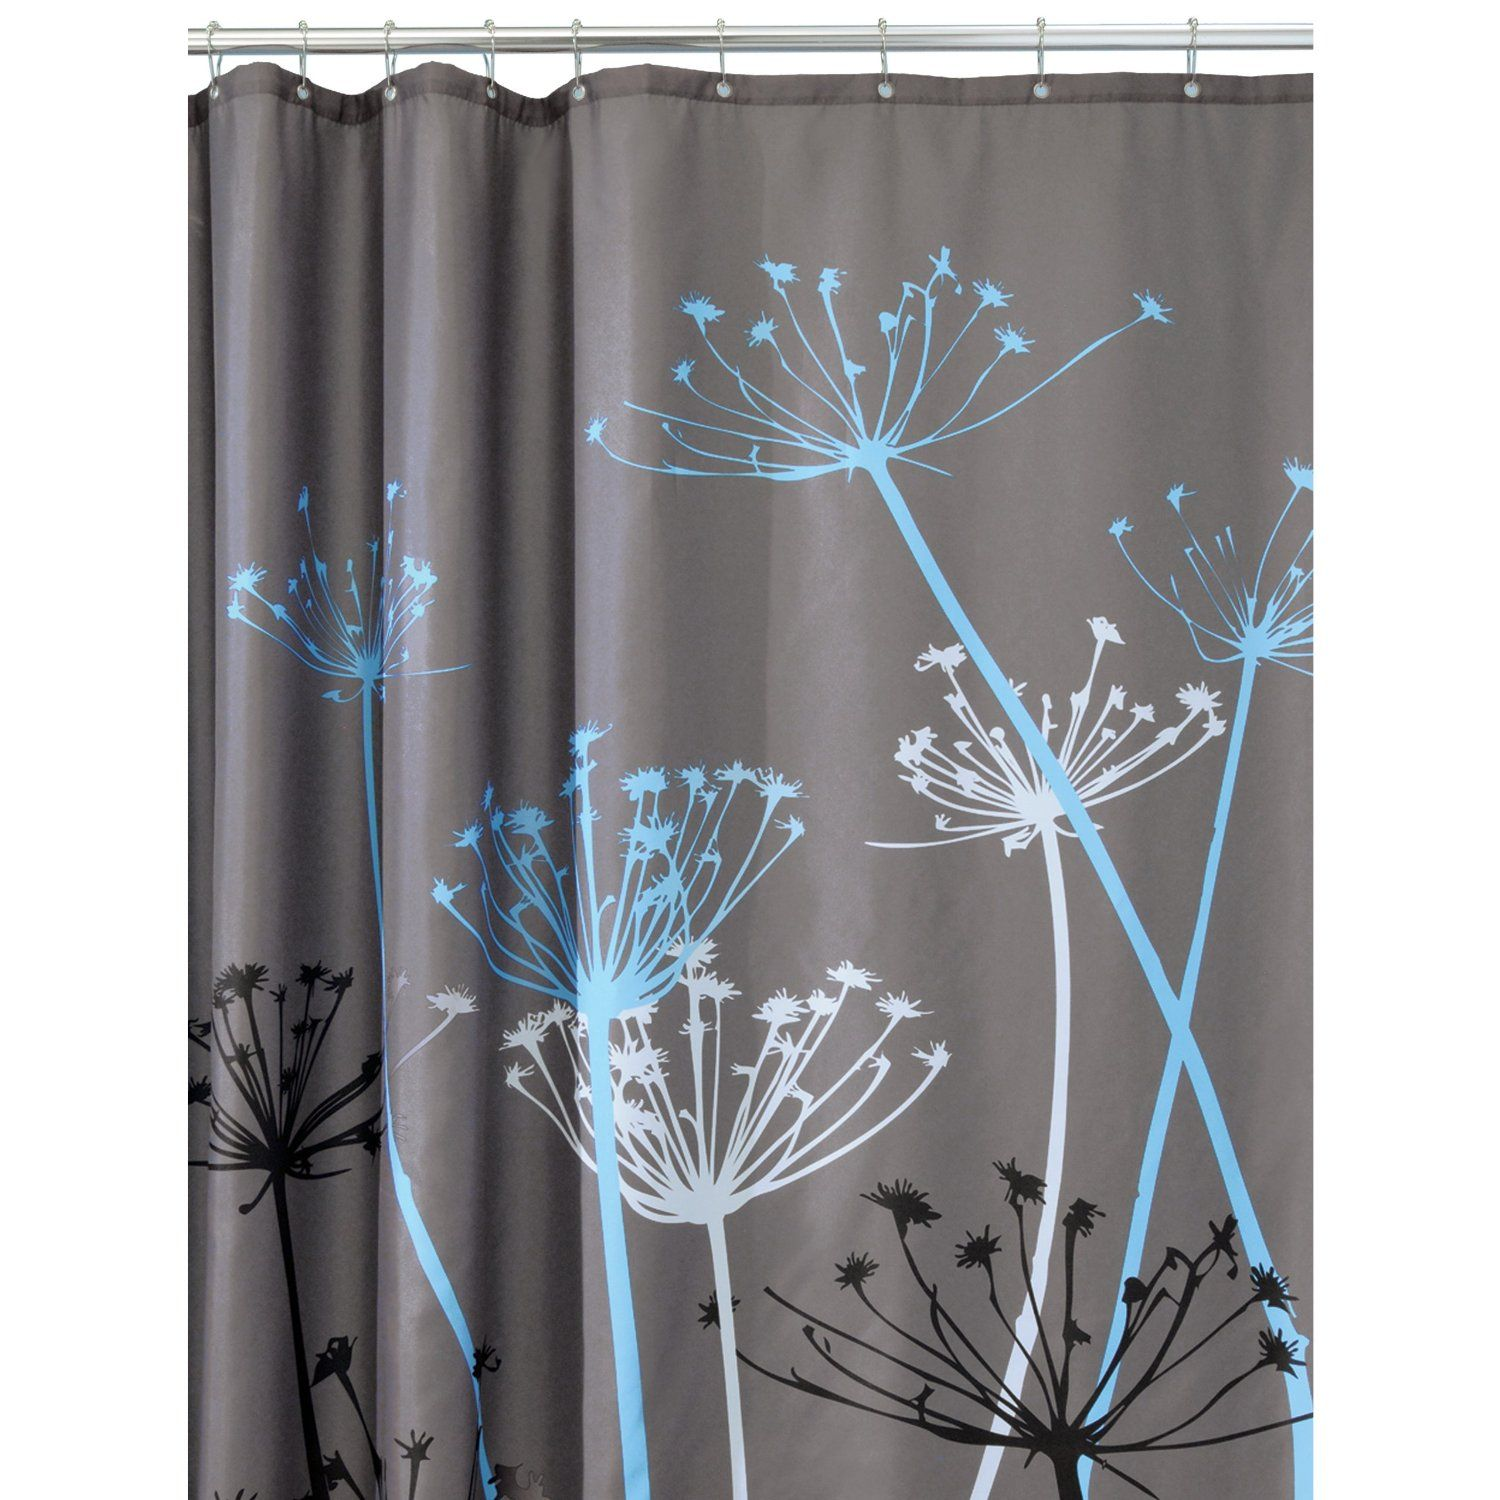 Bathroom Bathtubs And Courtains 72 Inch By 72 Inch Shower Curtain Gray Blue By